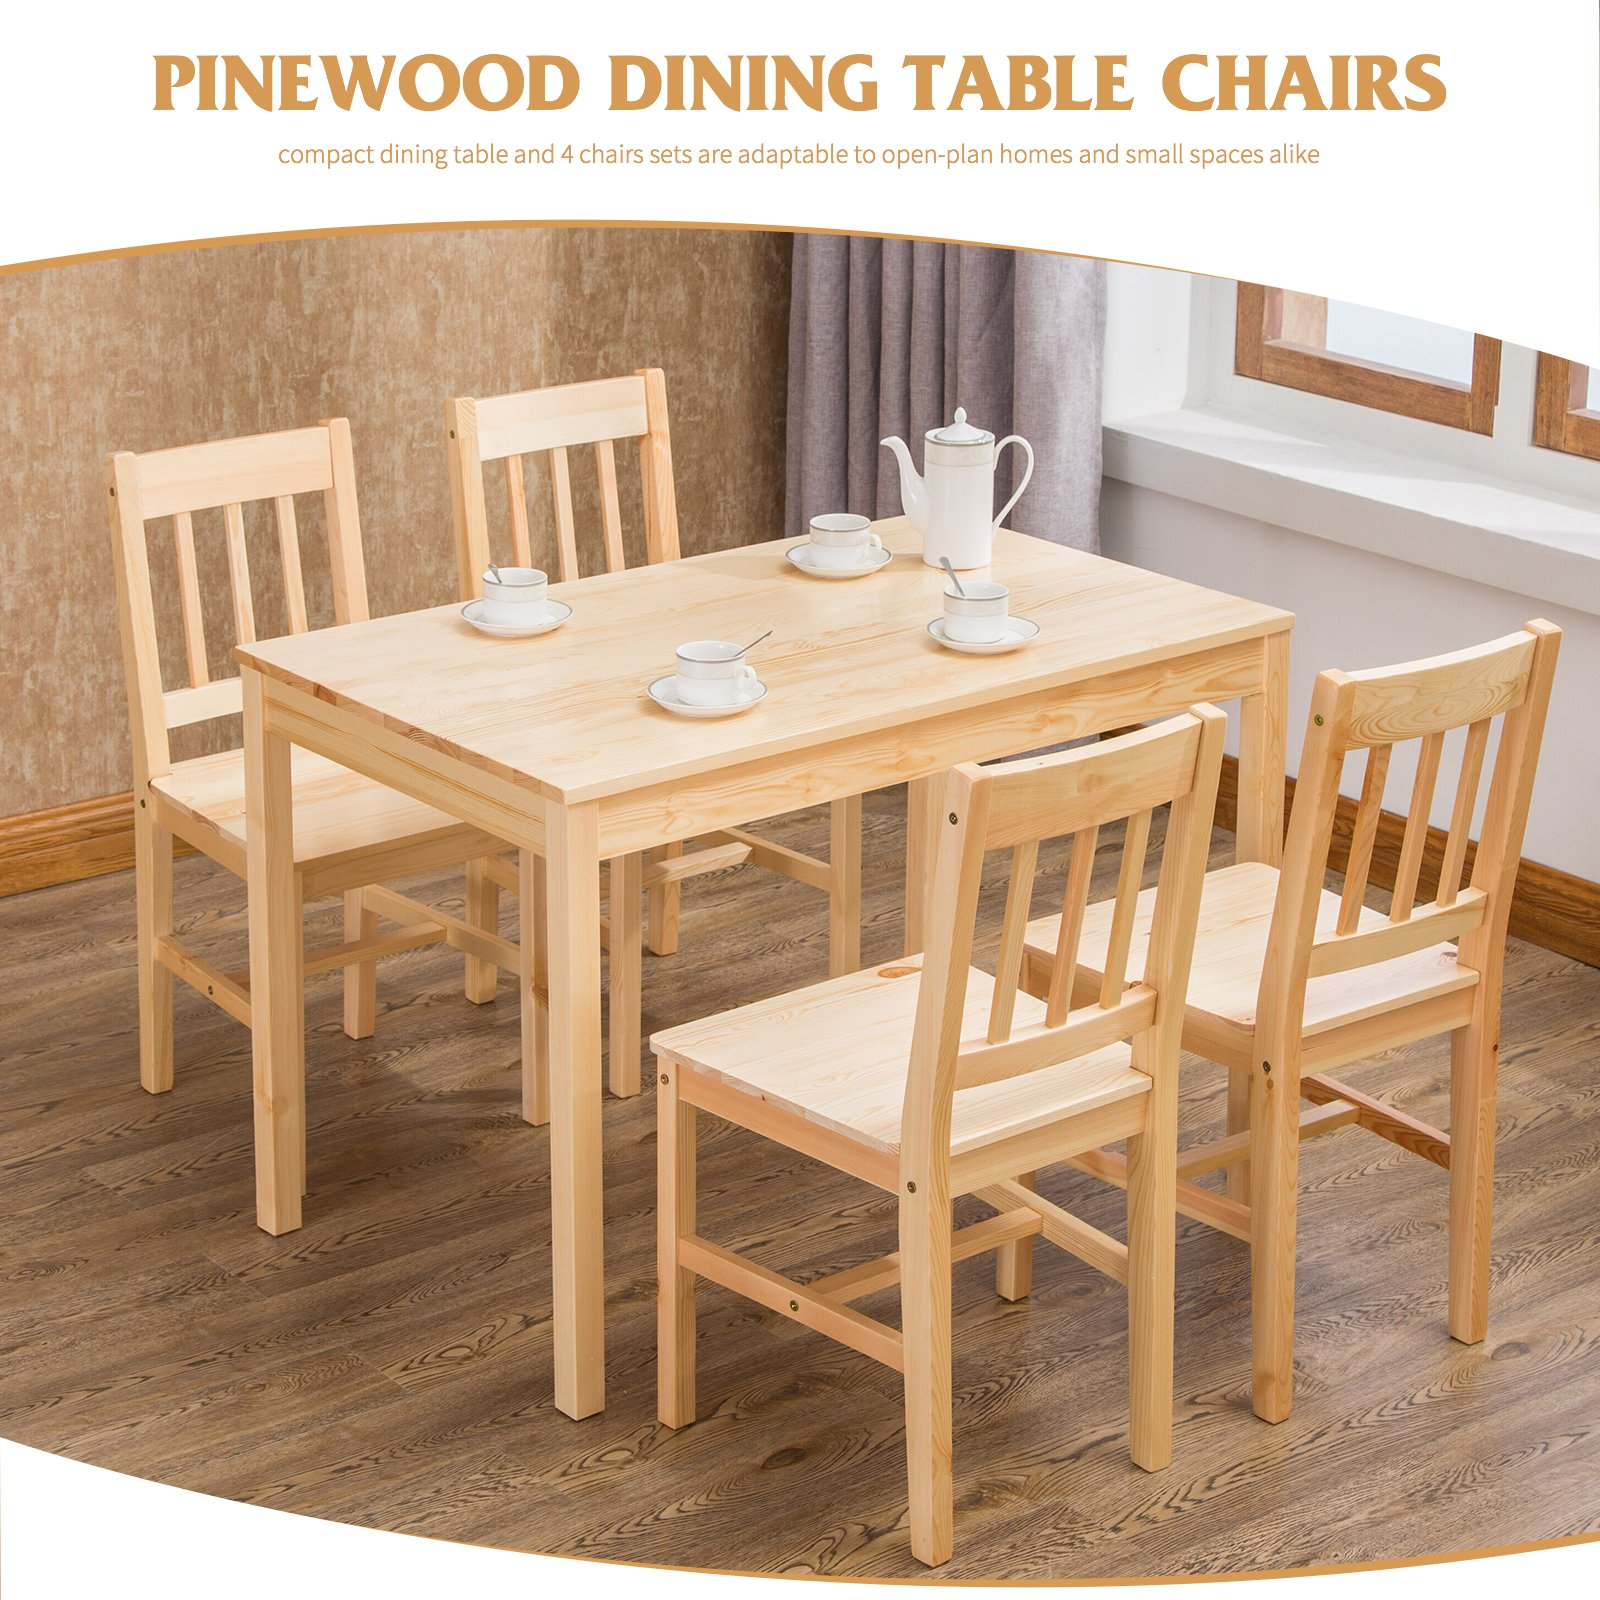 Small dining table and chairs set solid pine wood kitchen furniture with 4 seats